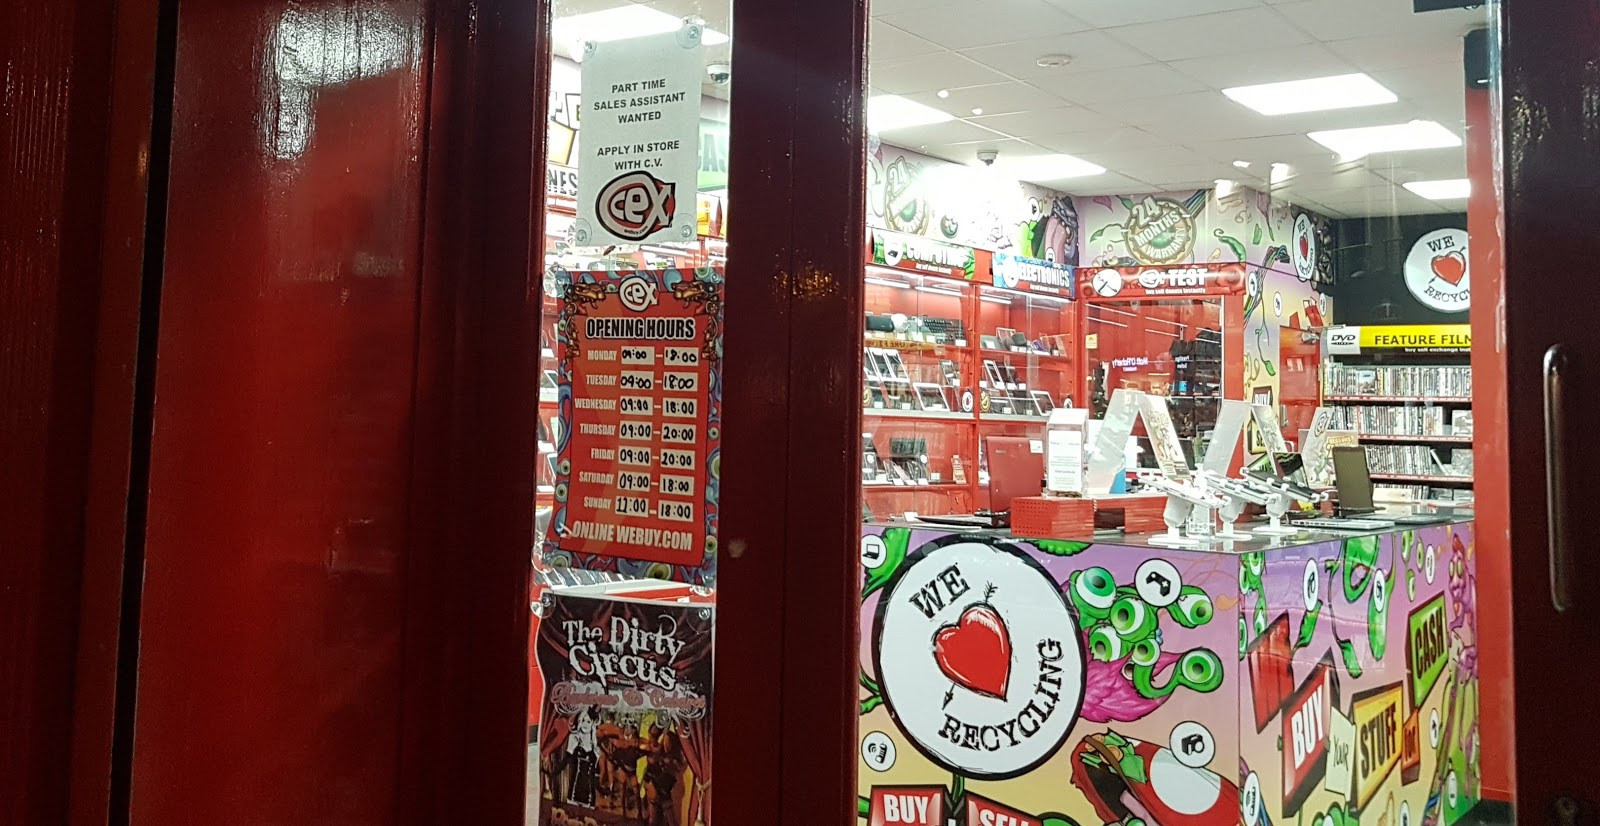 on a window with CEX galway games exchange winter opening hours and a we love recycling sticker with a bright red heart